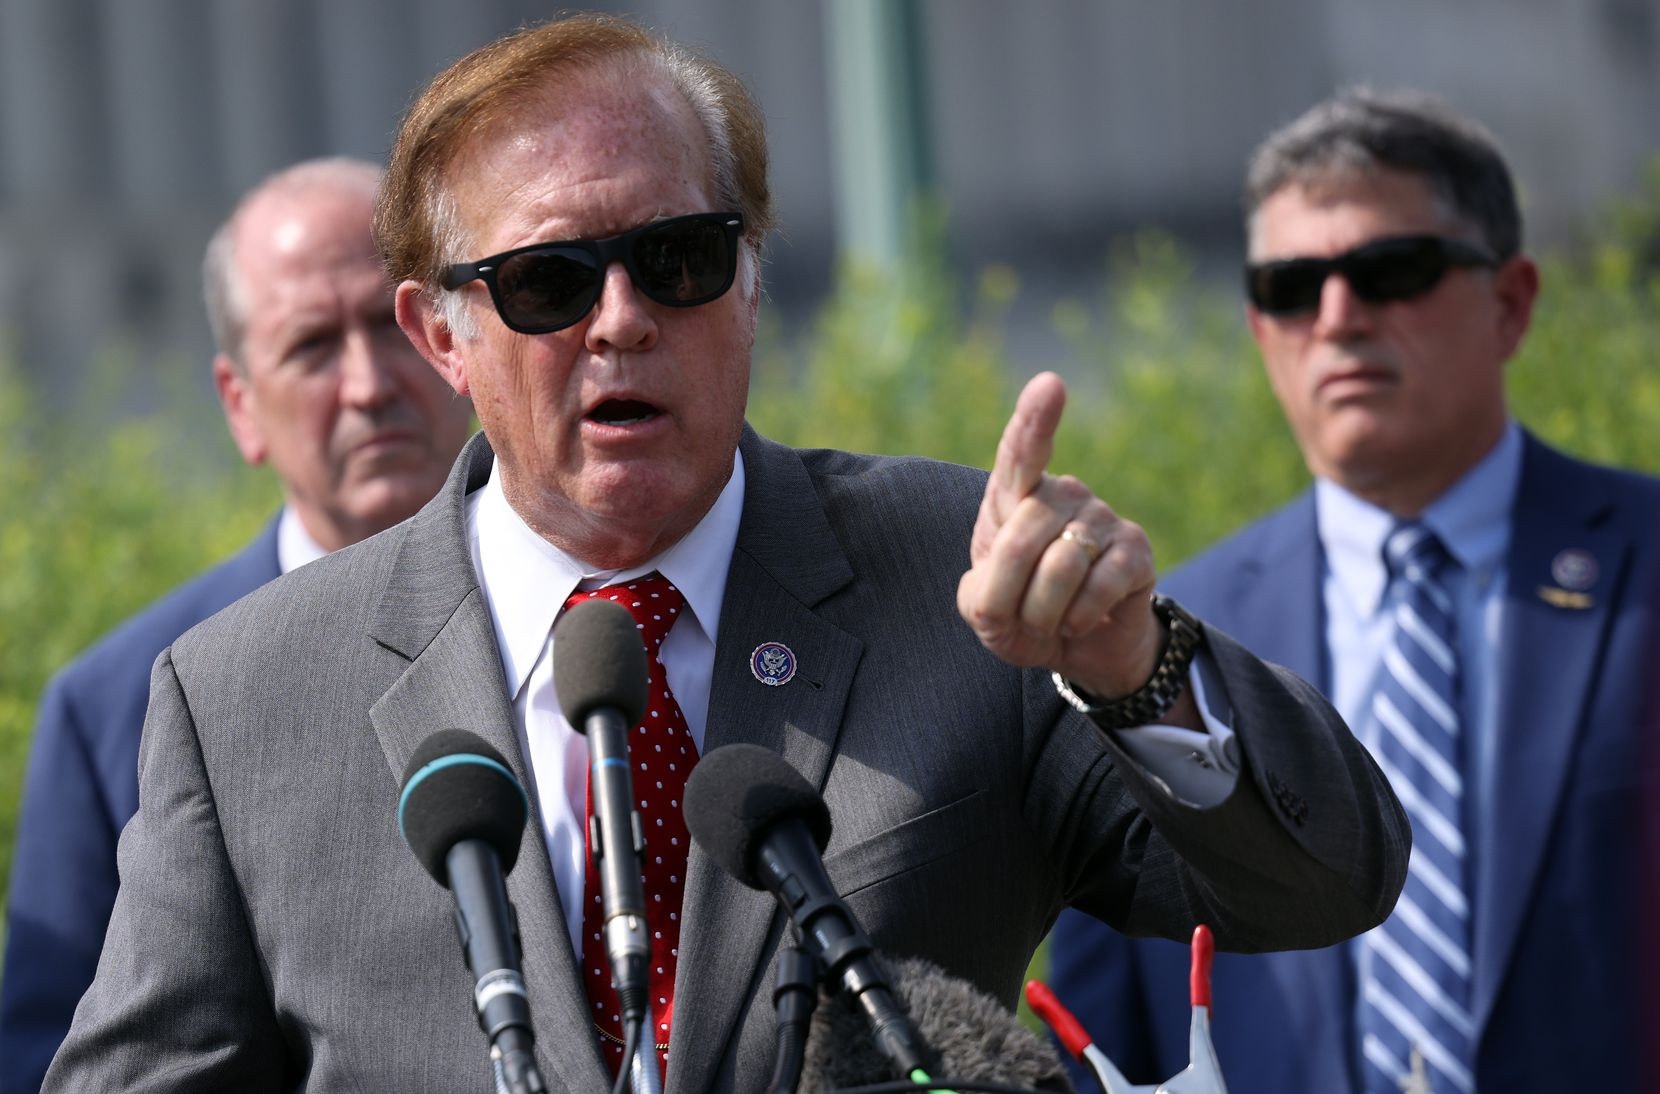 Rep. Randy Weber, R-Friendswood, speaks during a news conference on infrastructure with fellow members of the conservative House Freedom Caucus outside the Capitol on Aug. 23, 2021.